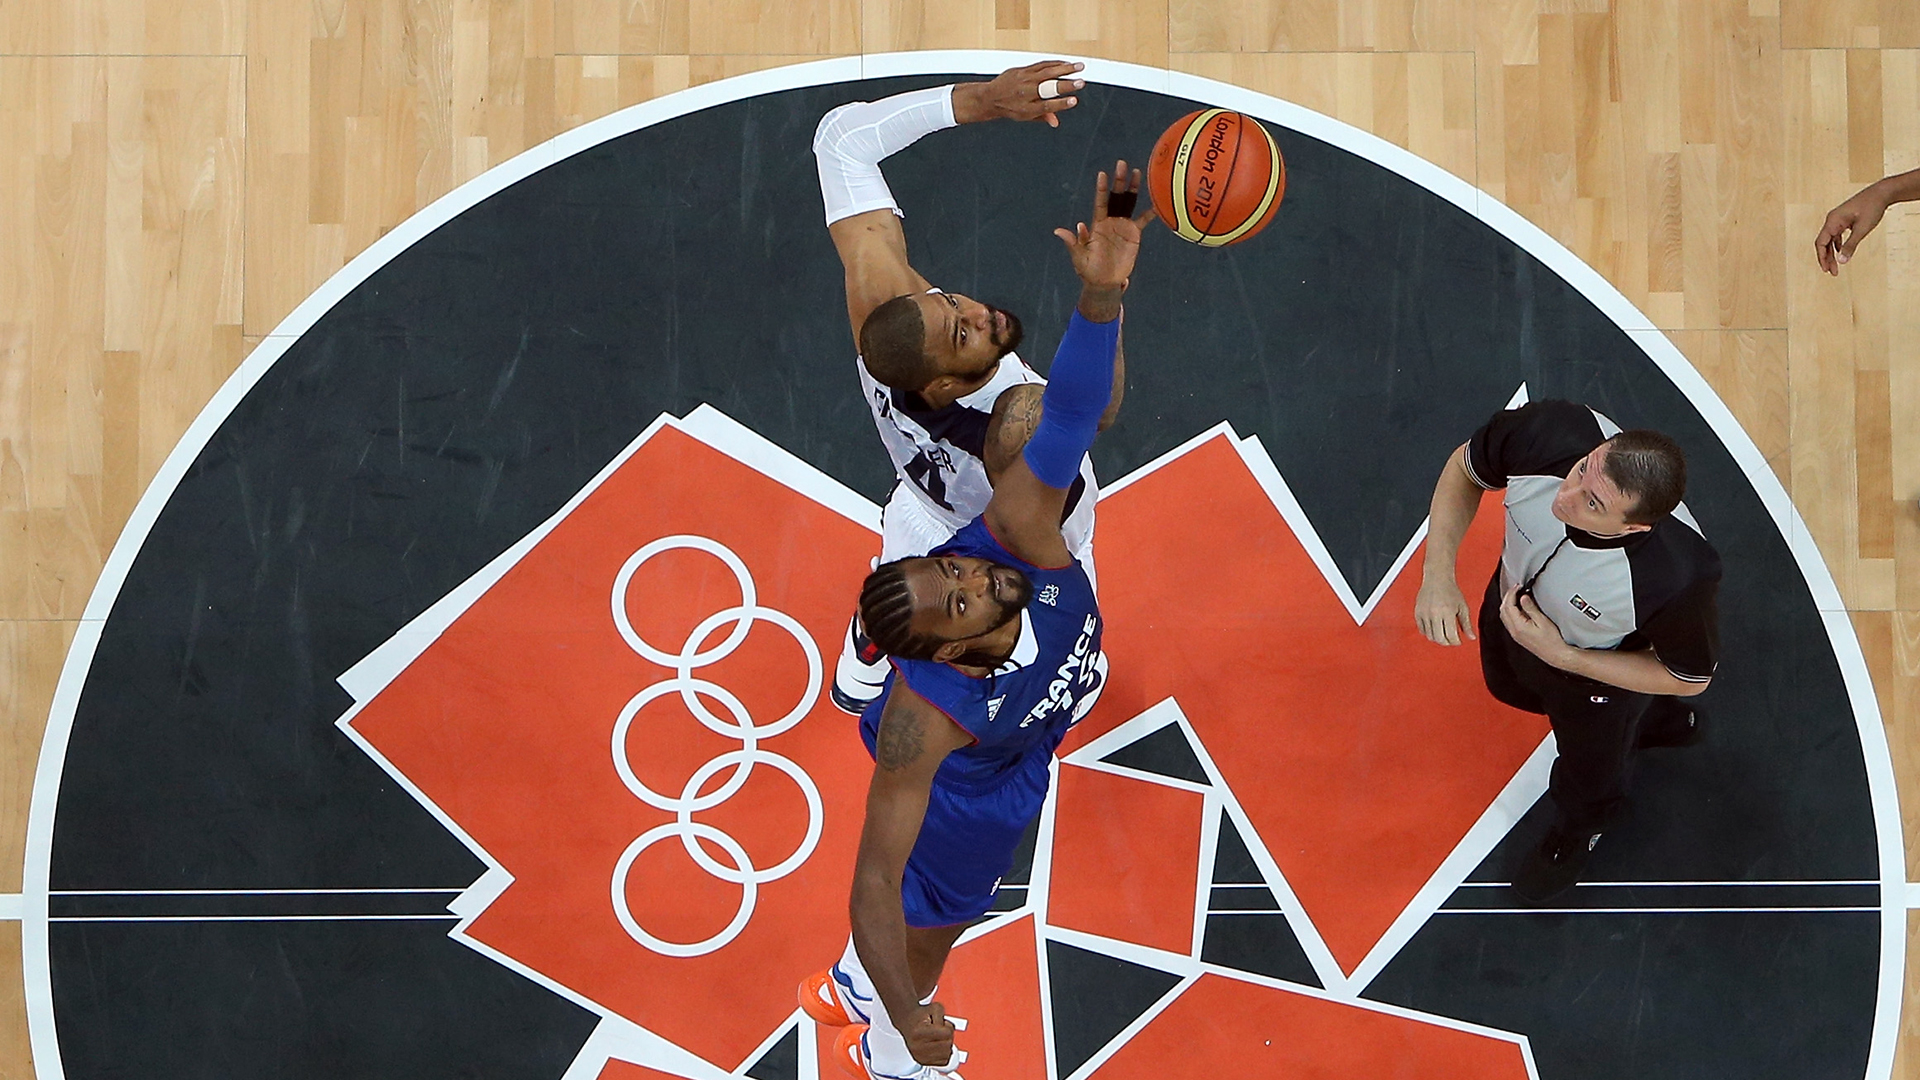 Tyson Chandler tip against France in the 2012 Olympics